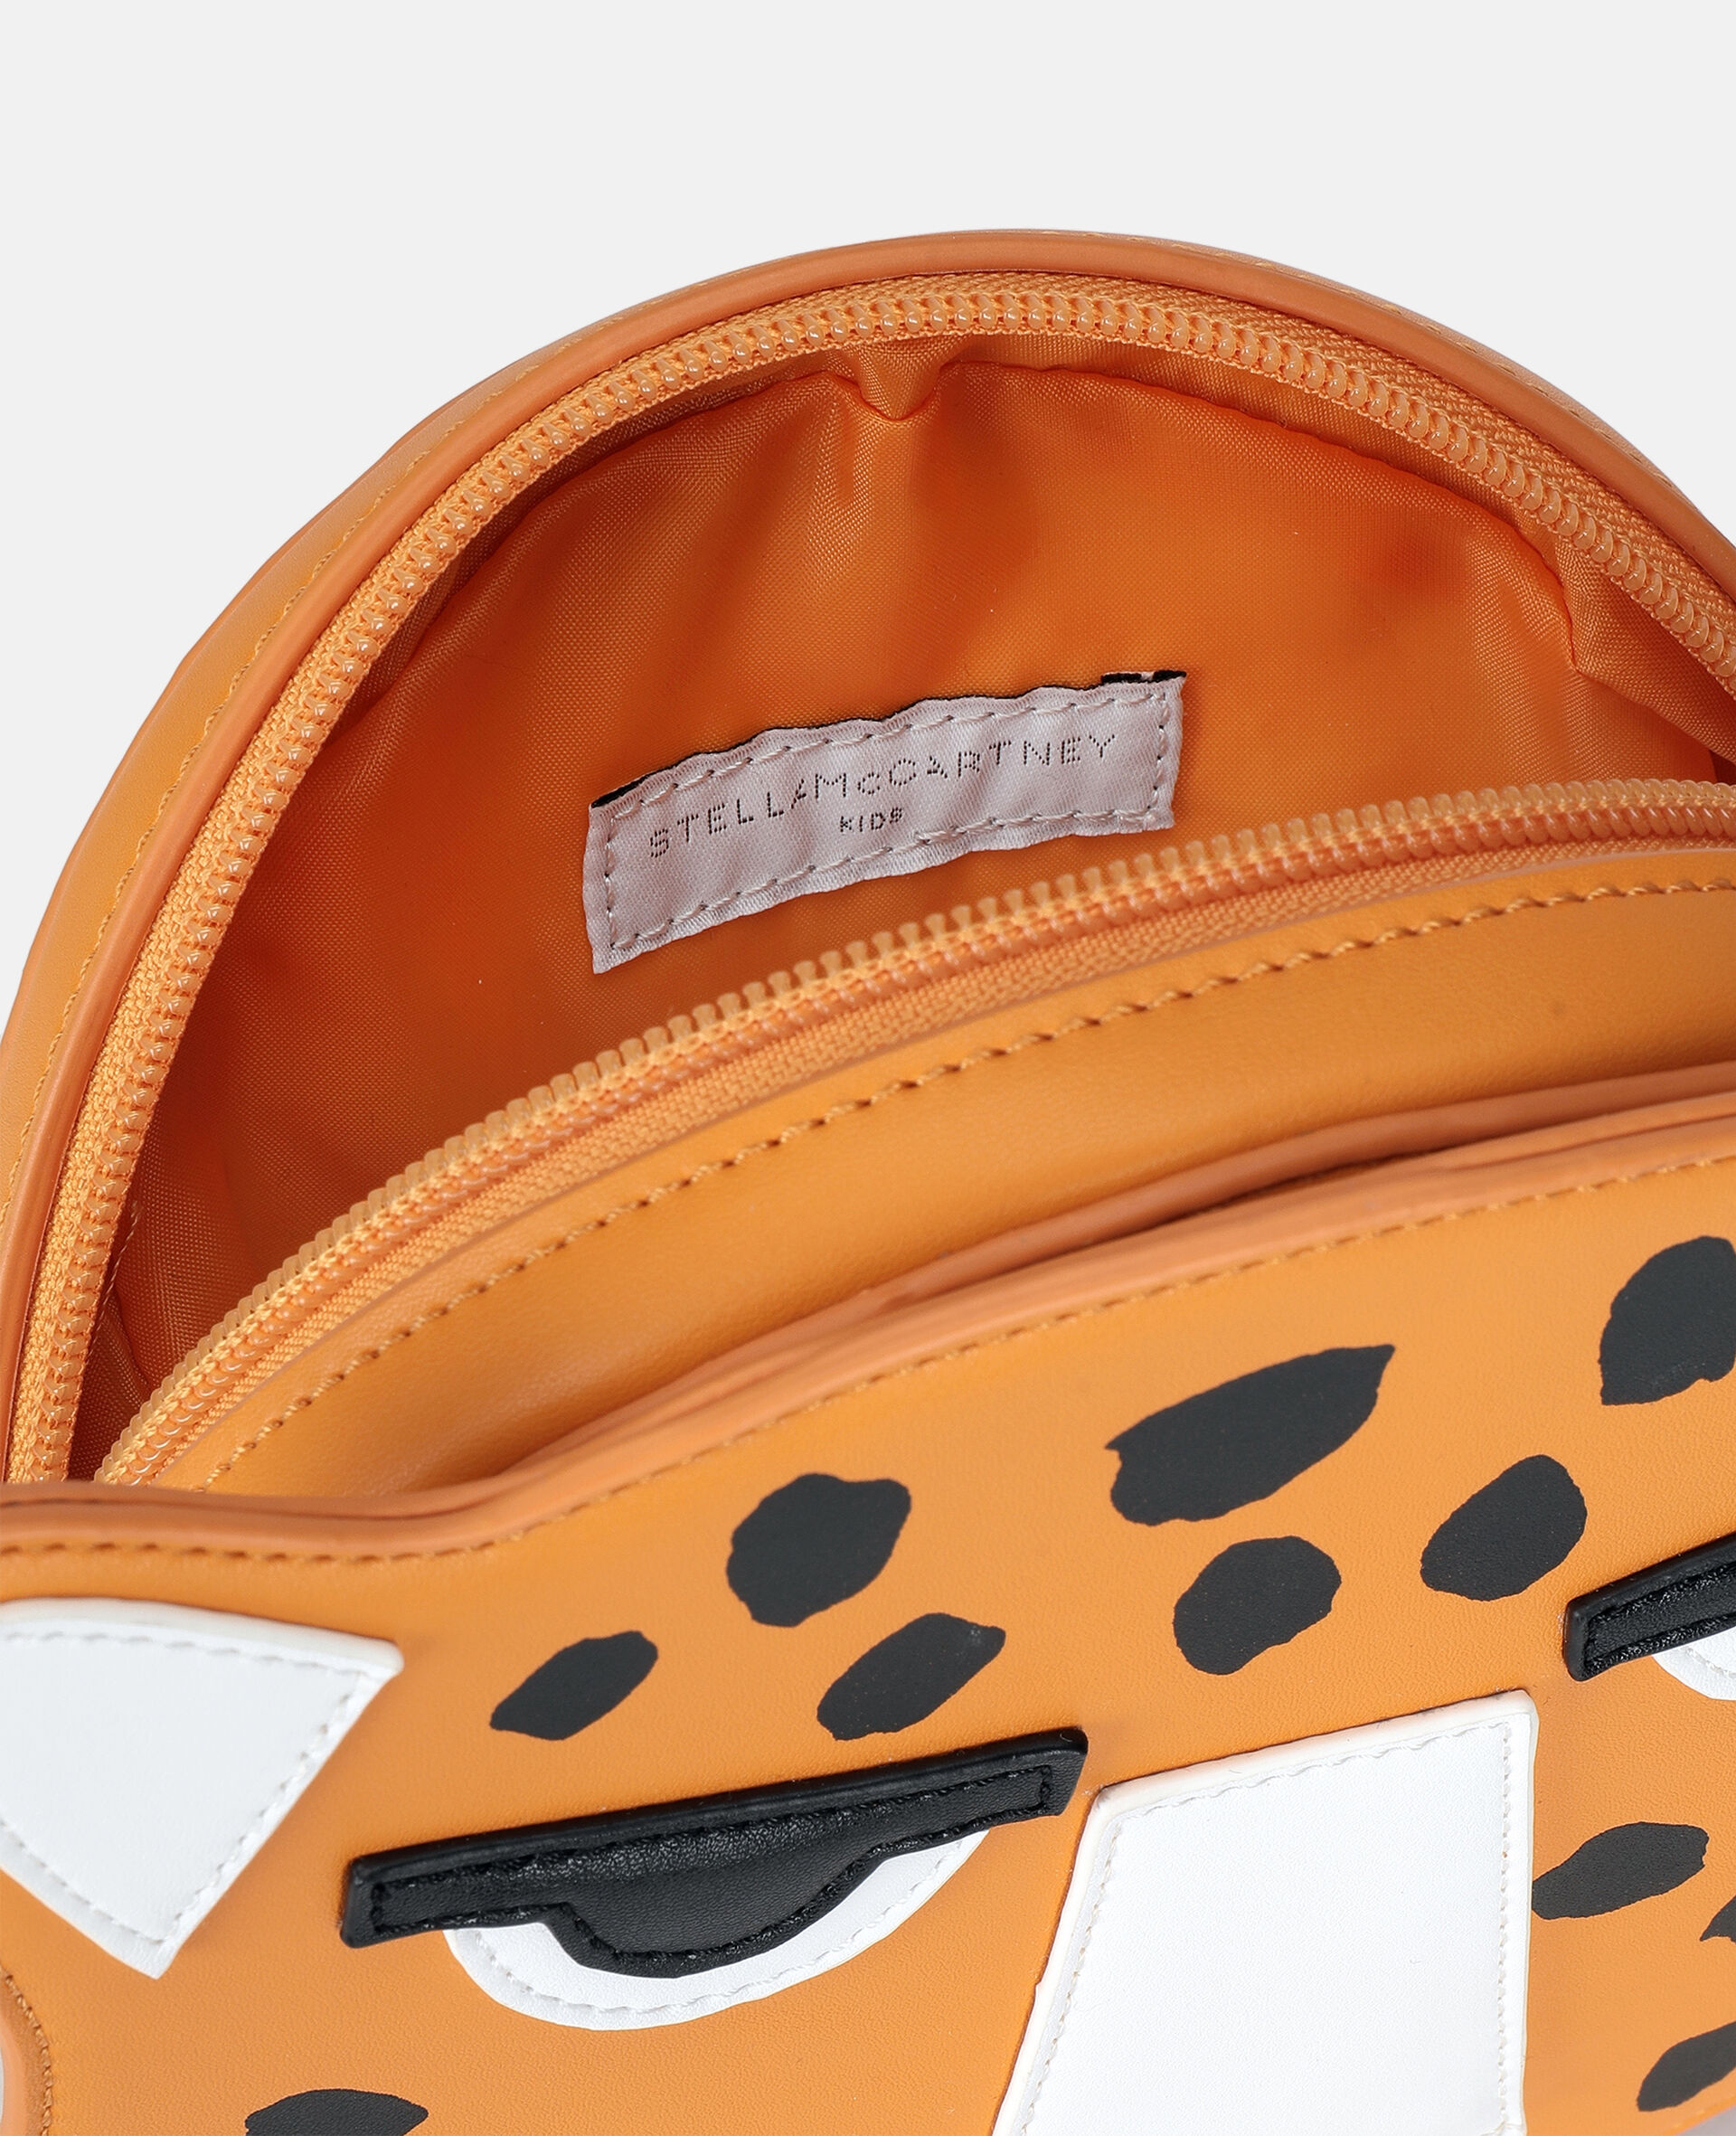 Cheetah Shoulder Bag -Orange-large image number 2